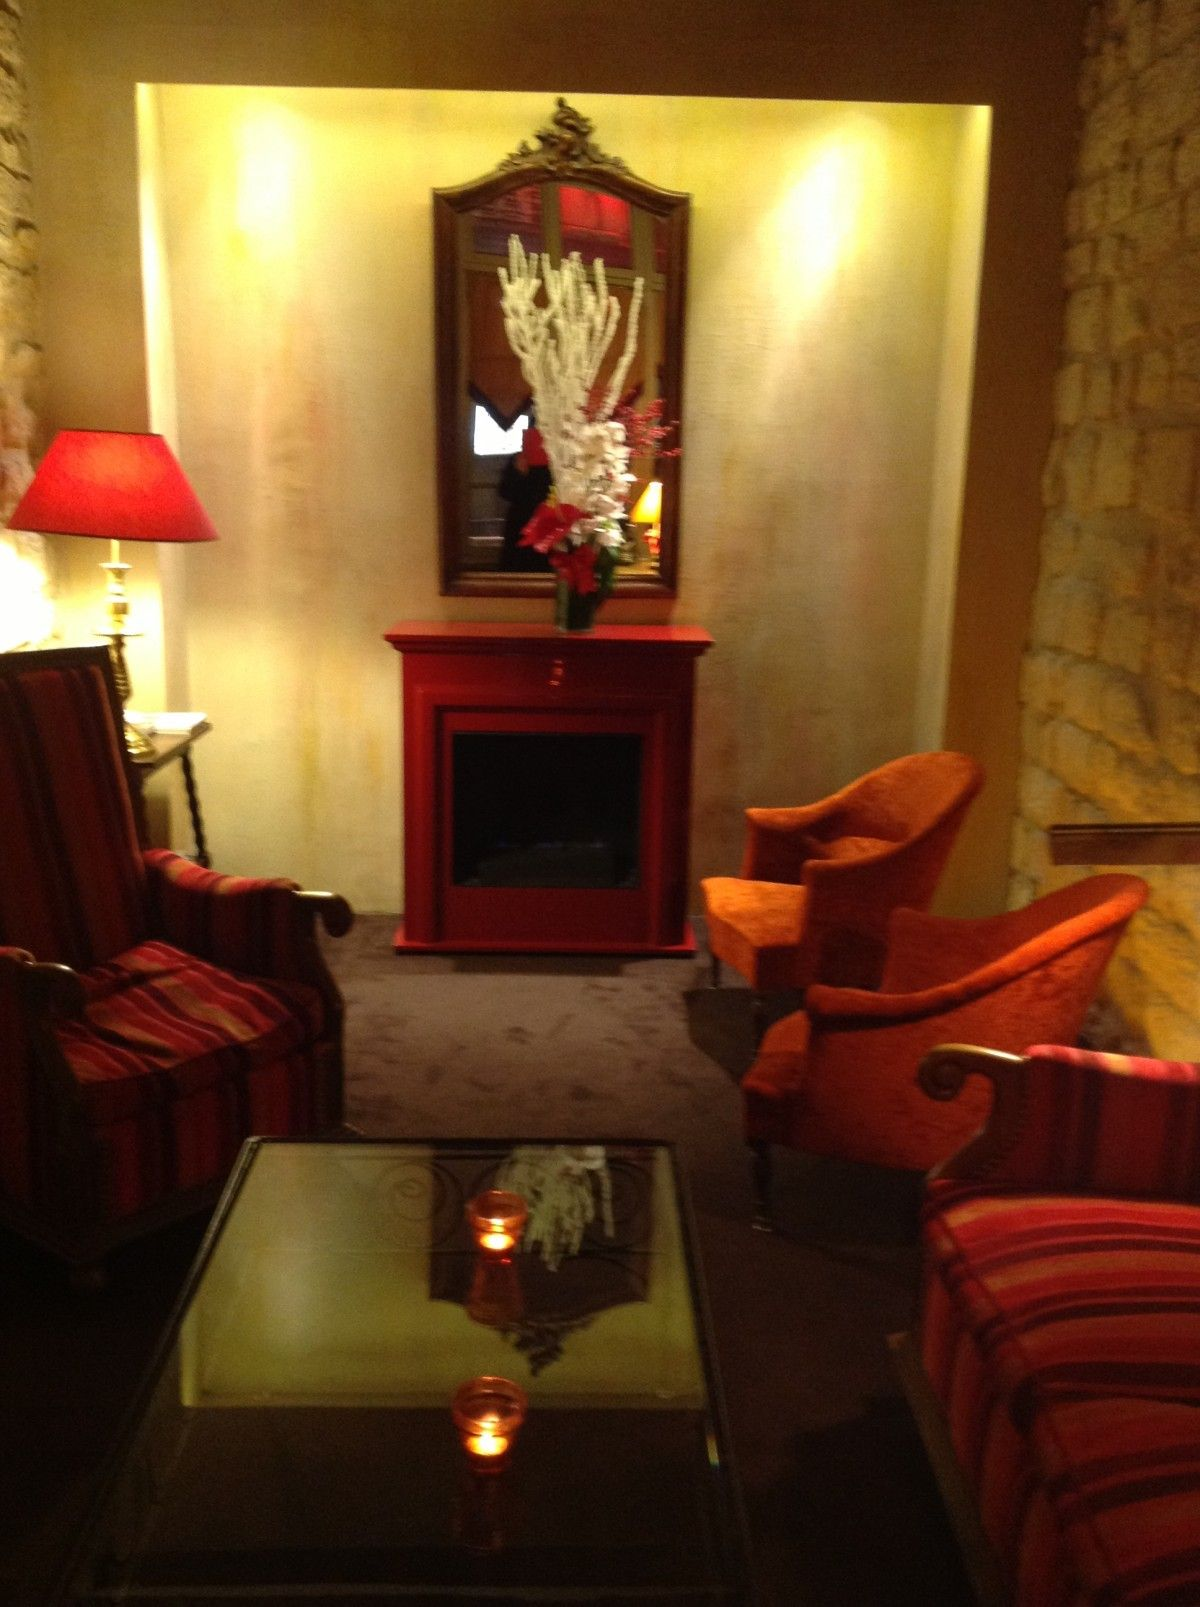 Welcoming reception area at the Hotel St.Paul Rive Gauch